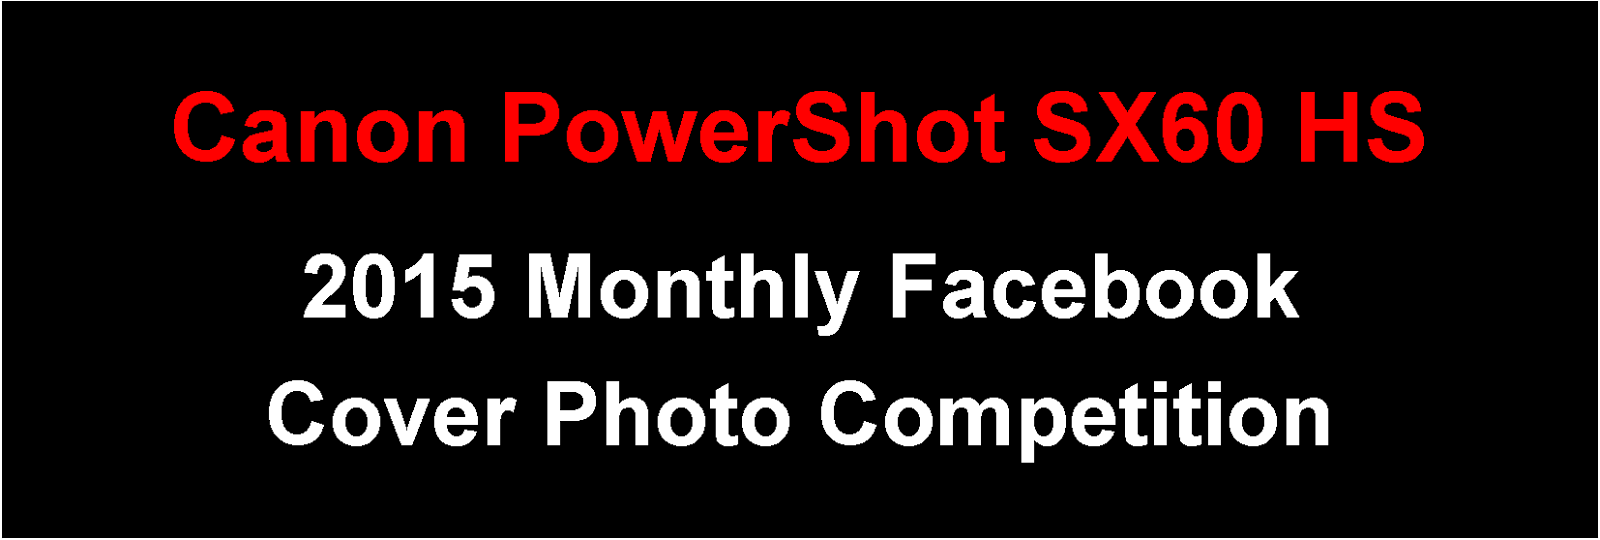 Canon PowerShot SX60 HS Facebook Cover Photo Competition - January 2015 Entries